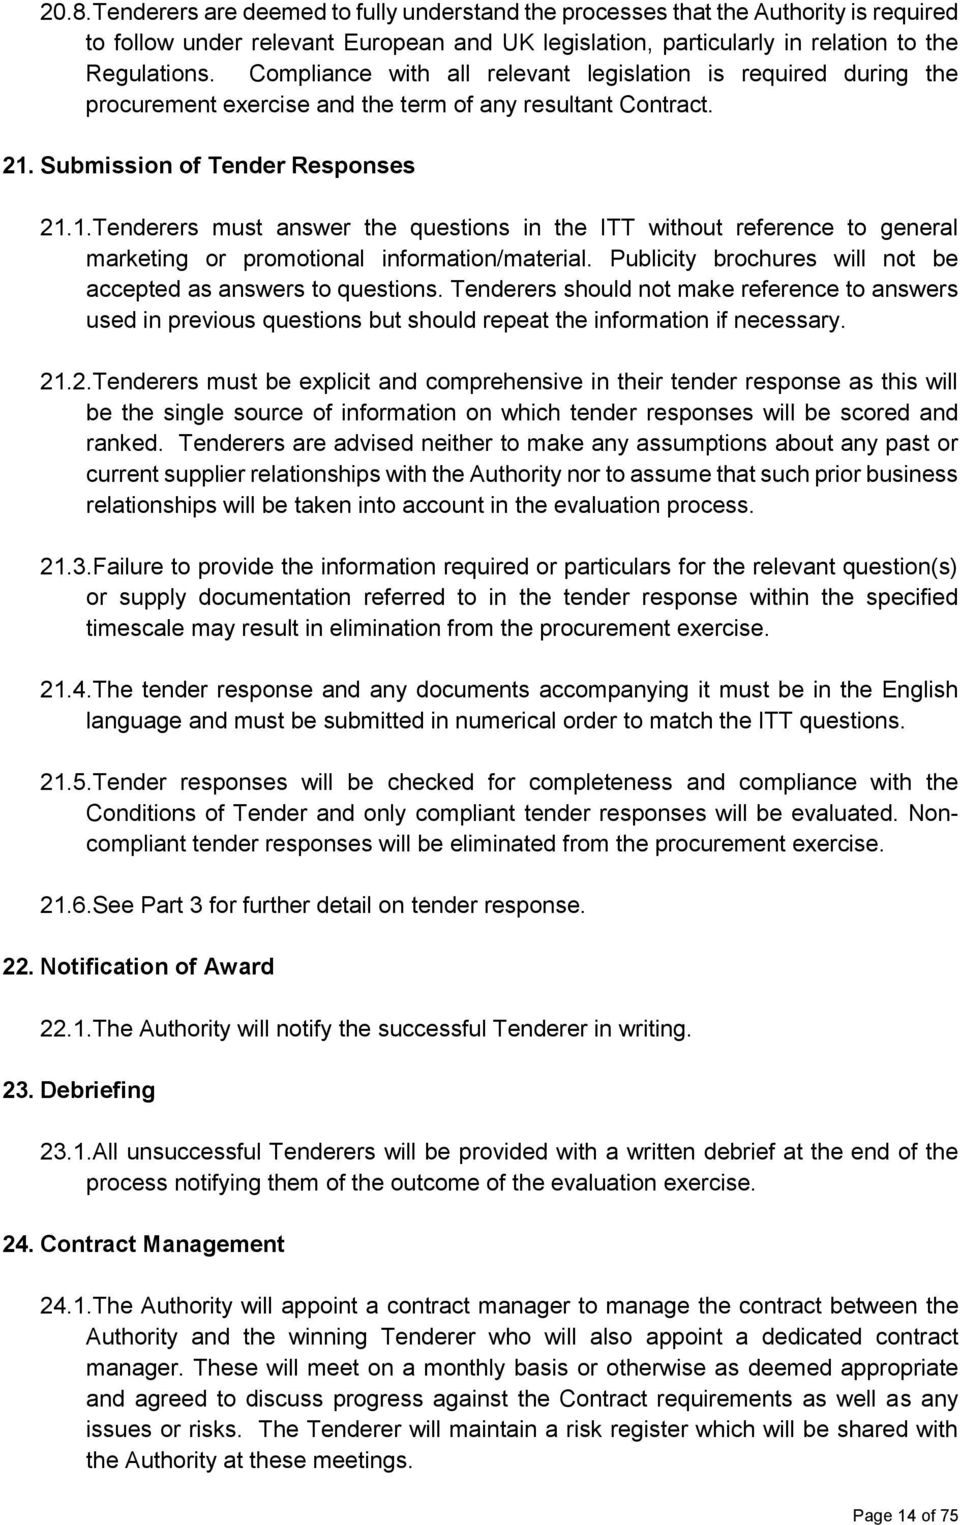 Submission of Tender Responses 21.1. Tenderers must answer the questions in the ITT without reference to general marketing or promotional information/material.